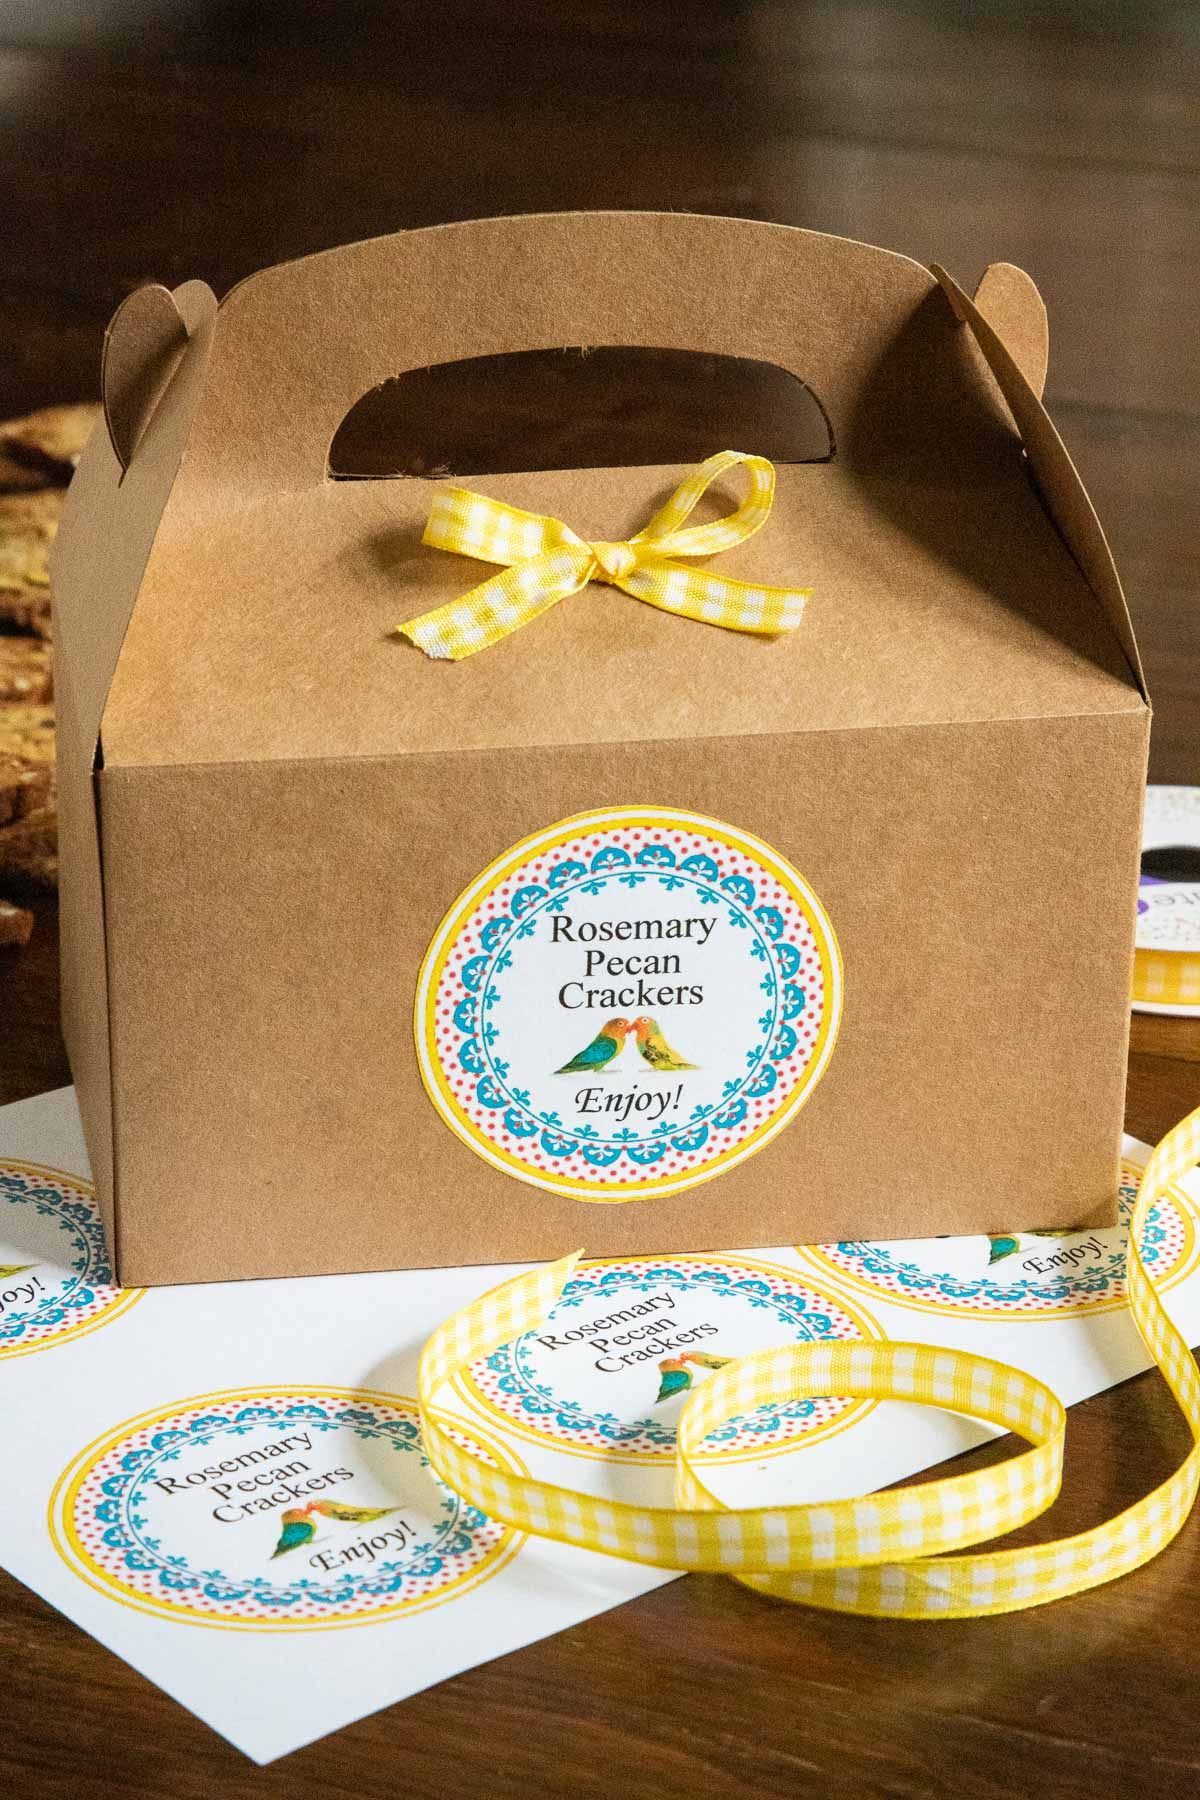 Vertical photo of a gift box filled with Copycat Rosemary Pecan Raincoast Crackers and decorated with a custom label for gift giving.